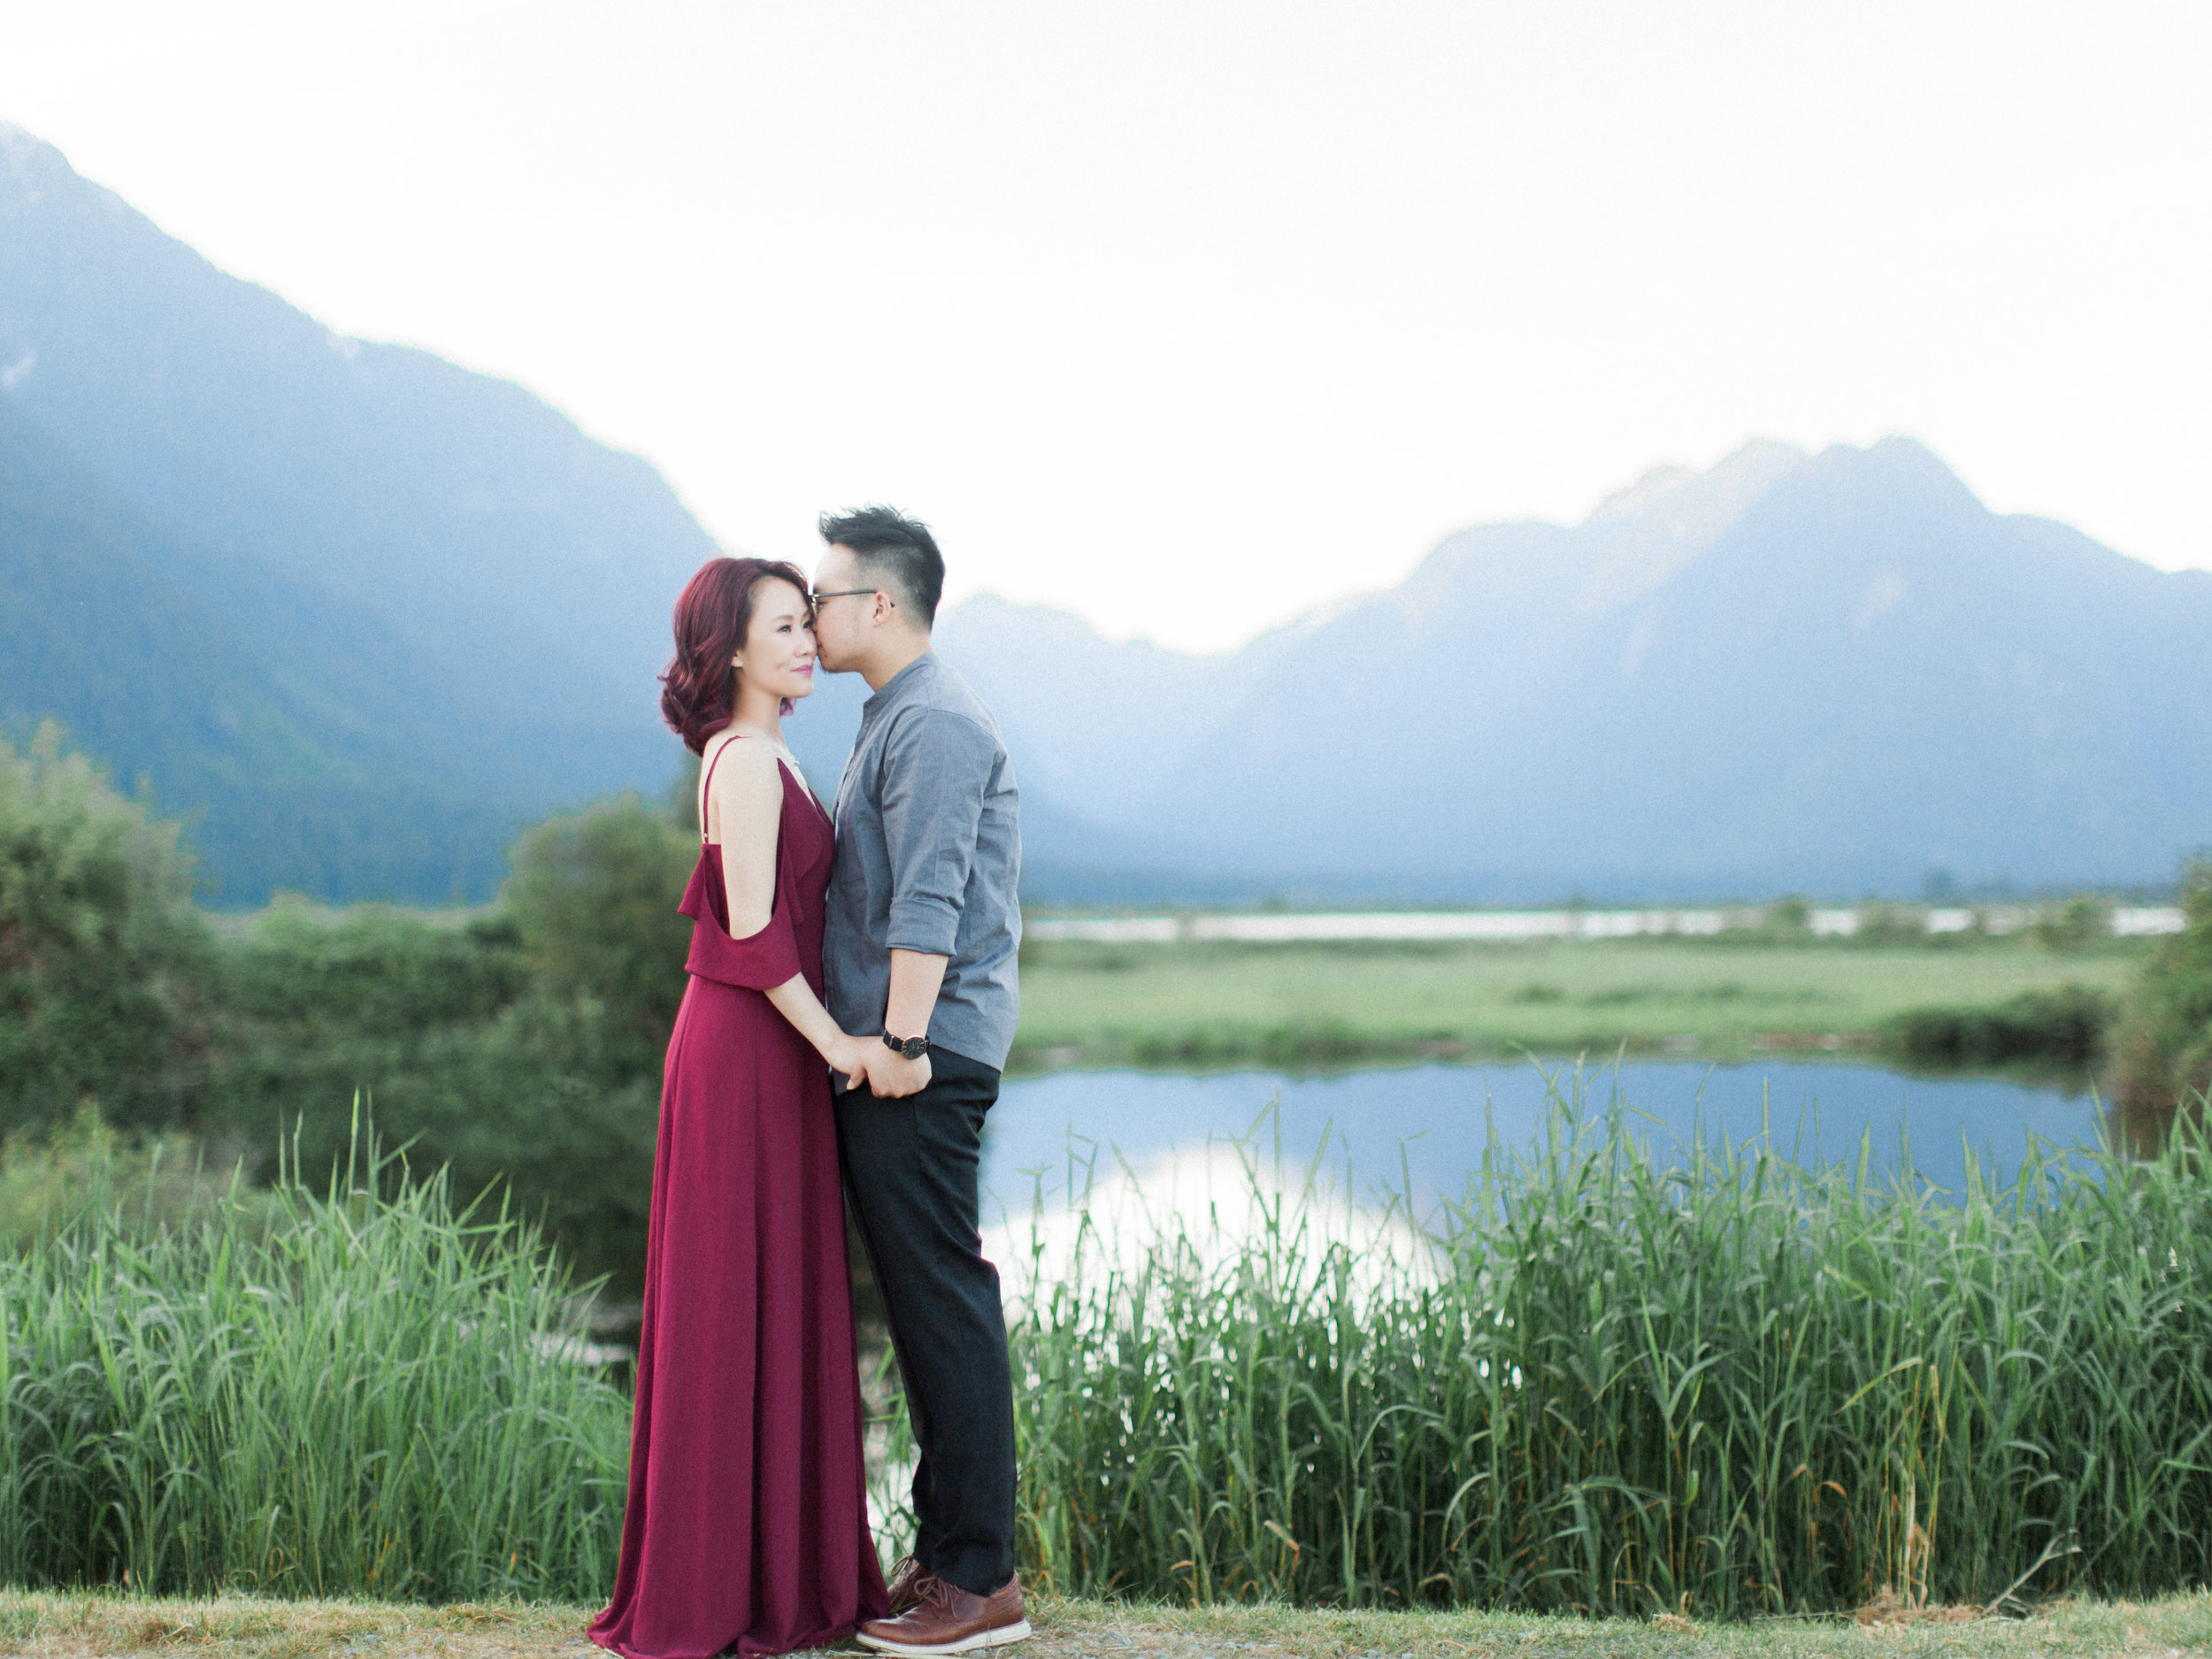 20170528Maple_Ridge_Engagement_Mary_Marco_Prewedding-28 copy.jpg